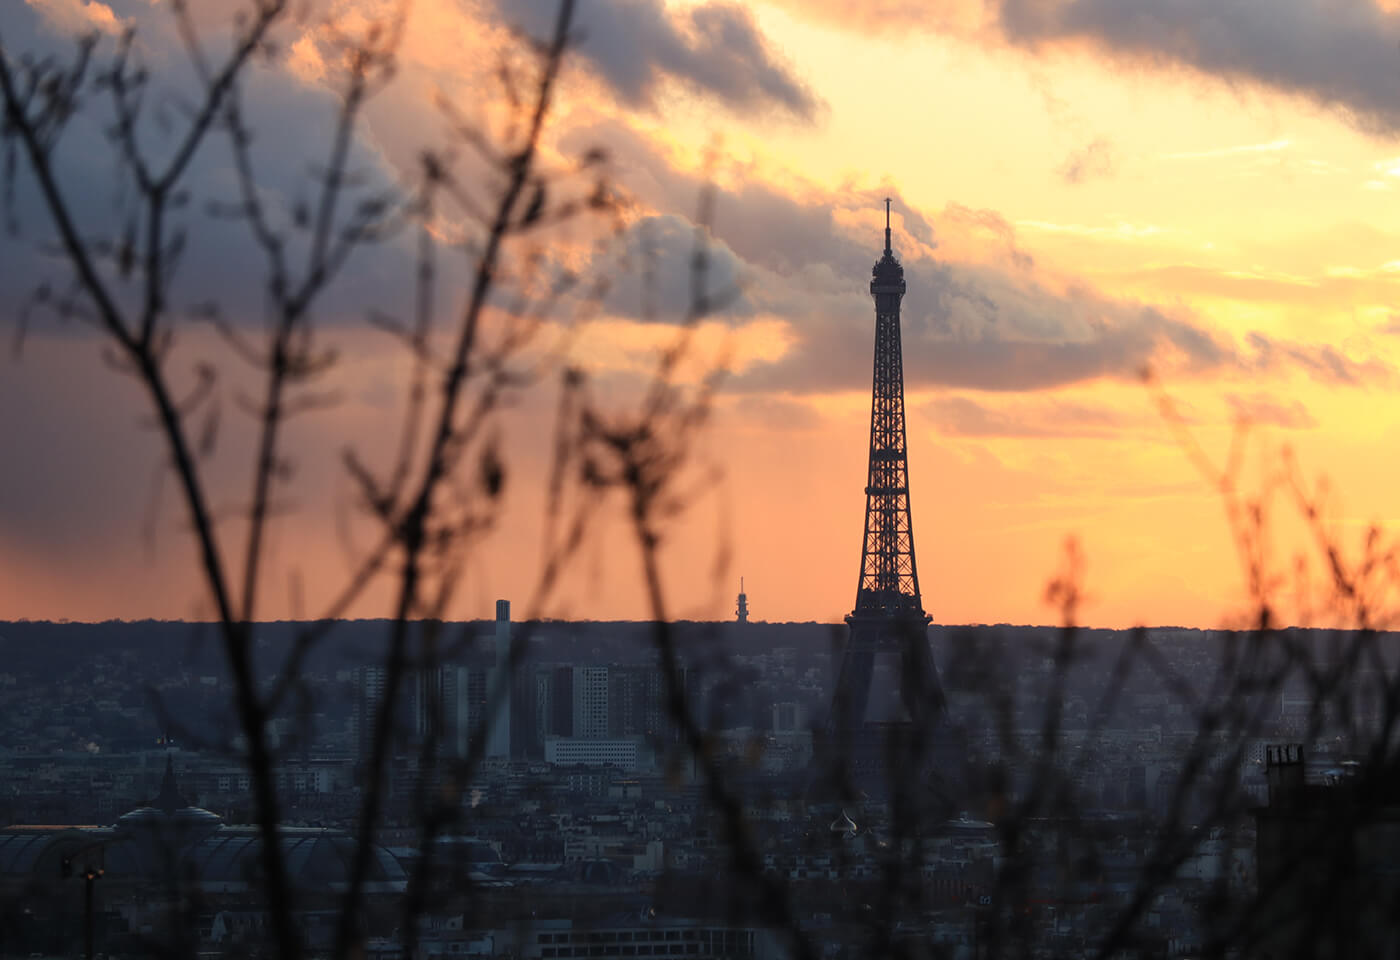 The Eiffel Tower and Paris city skyline viewed through bare tree branches at sunset, photographed with the Canon EOS M50